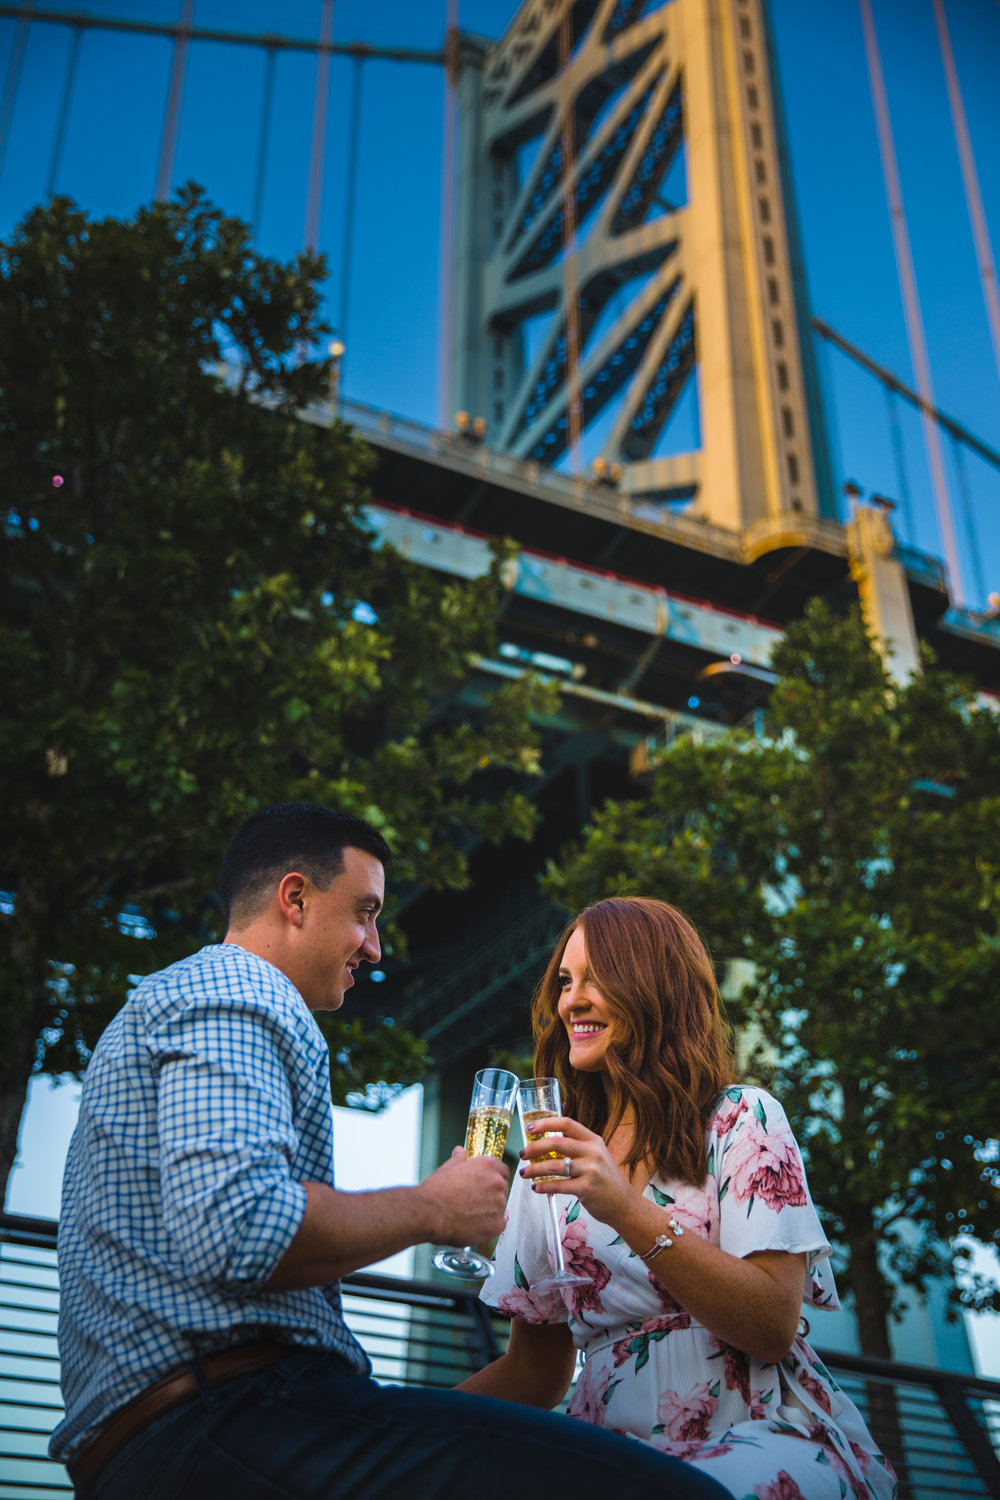 OLD CITY PHILADELPHIA ENGAGEMENT PHOTOS LOVESTRUCK PICTURES - 055.jpg